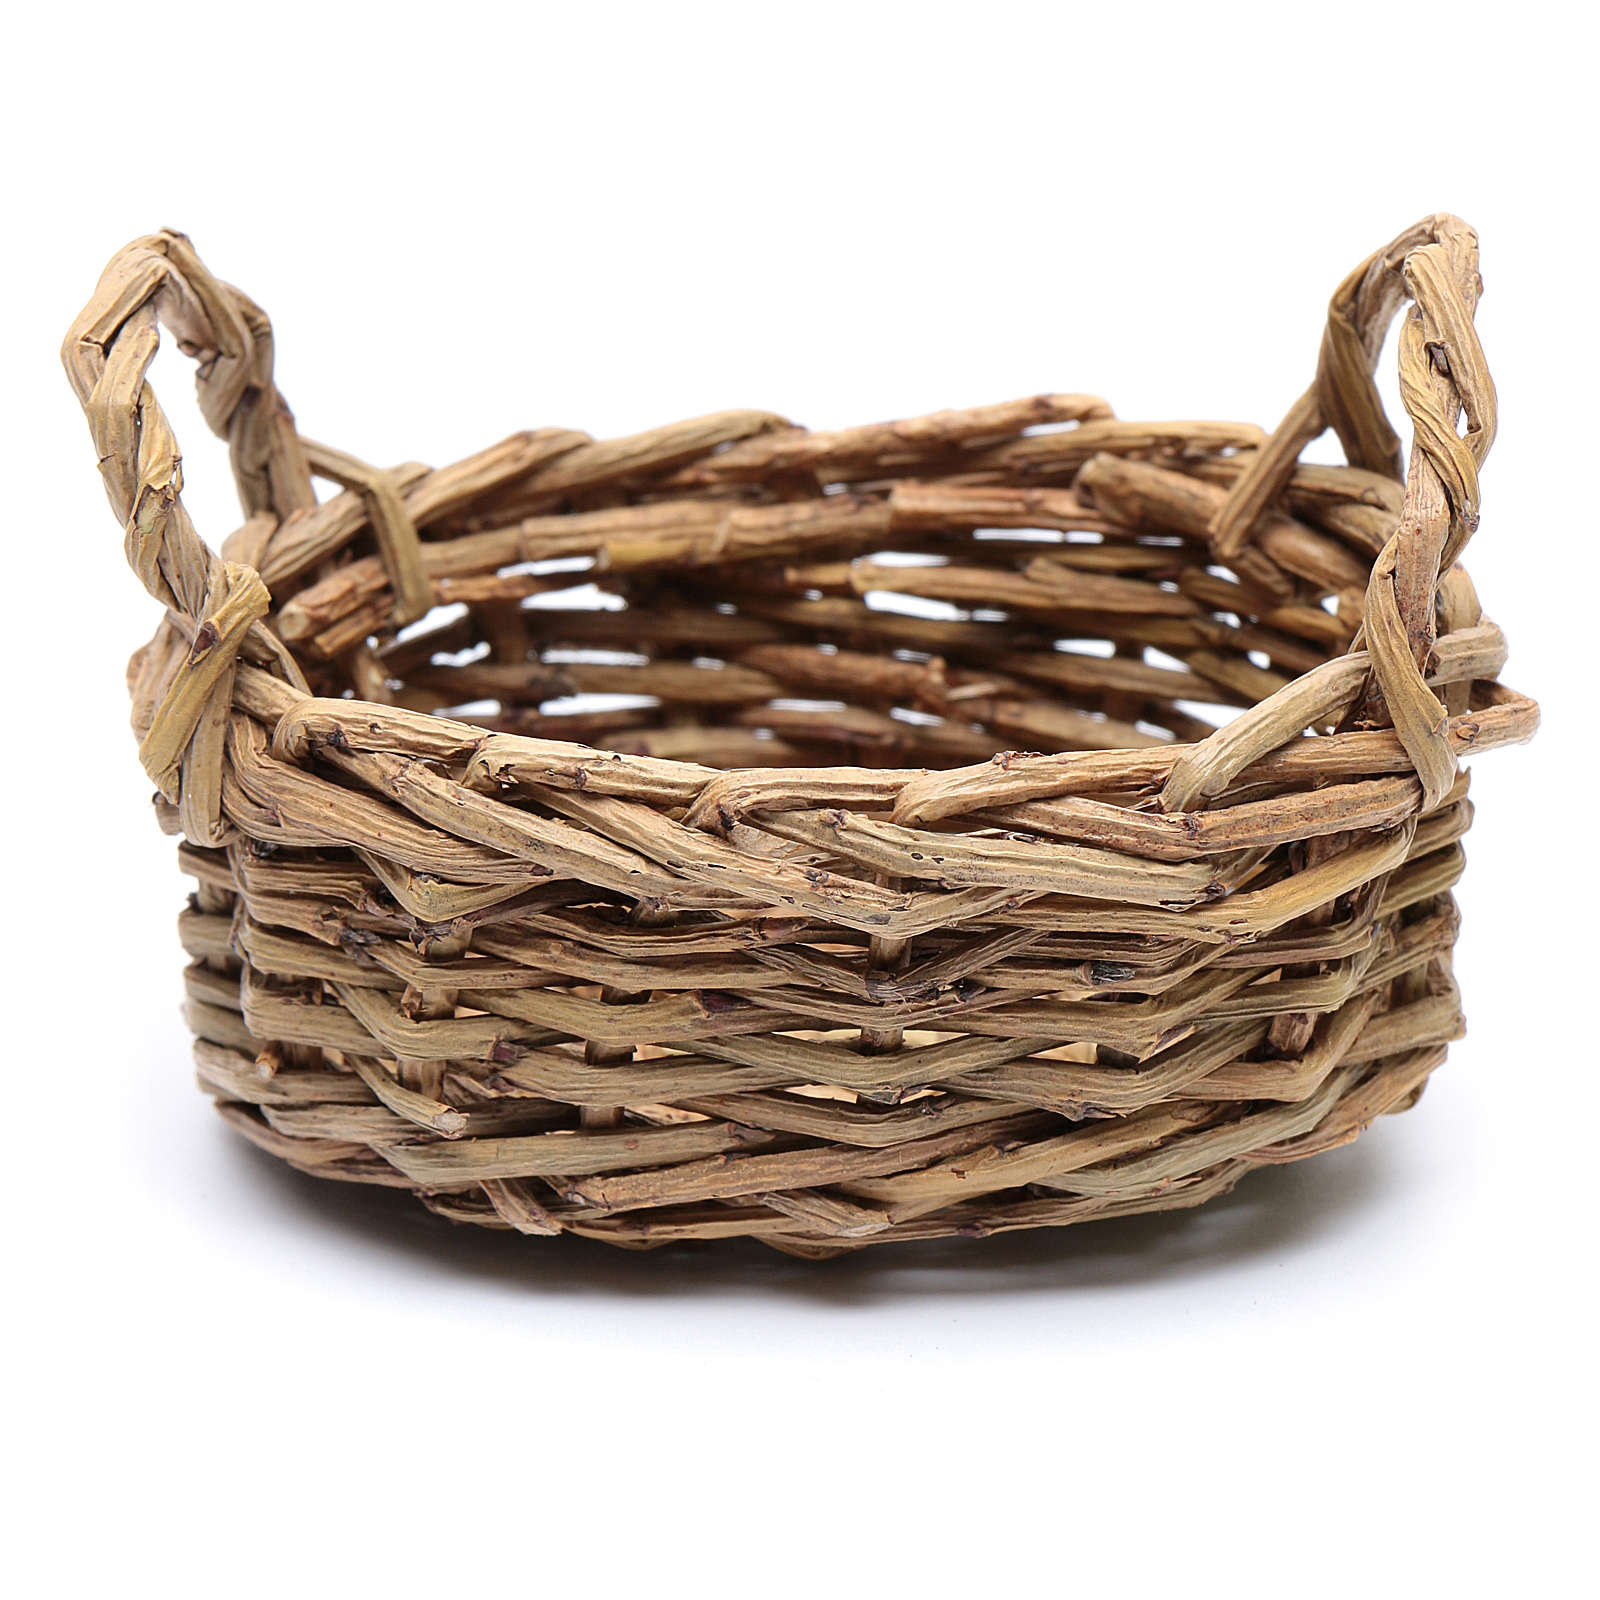 DIY nativity scene wicker basket for laundry 6x6x9 cm 4